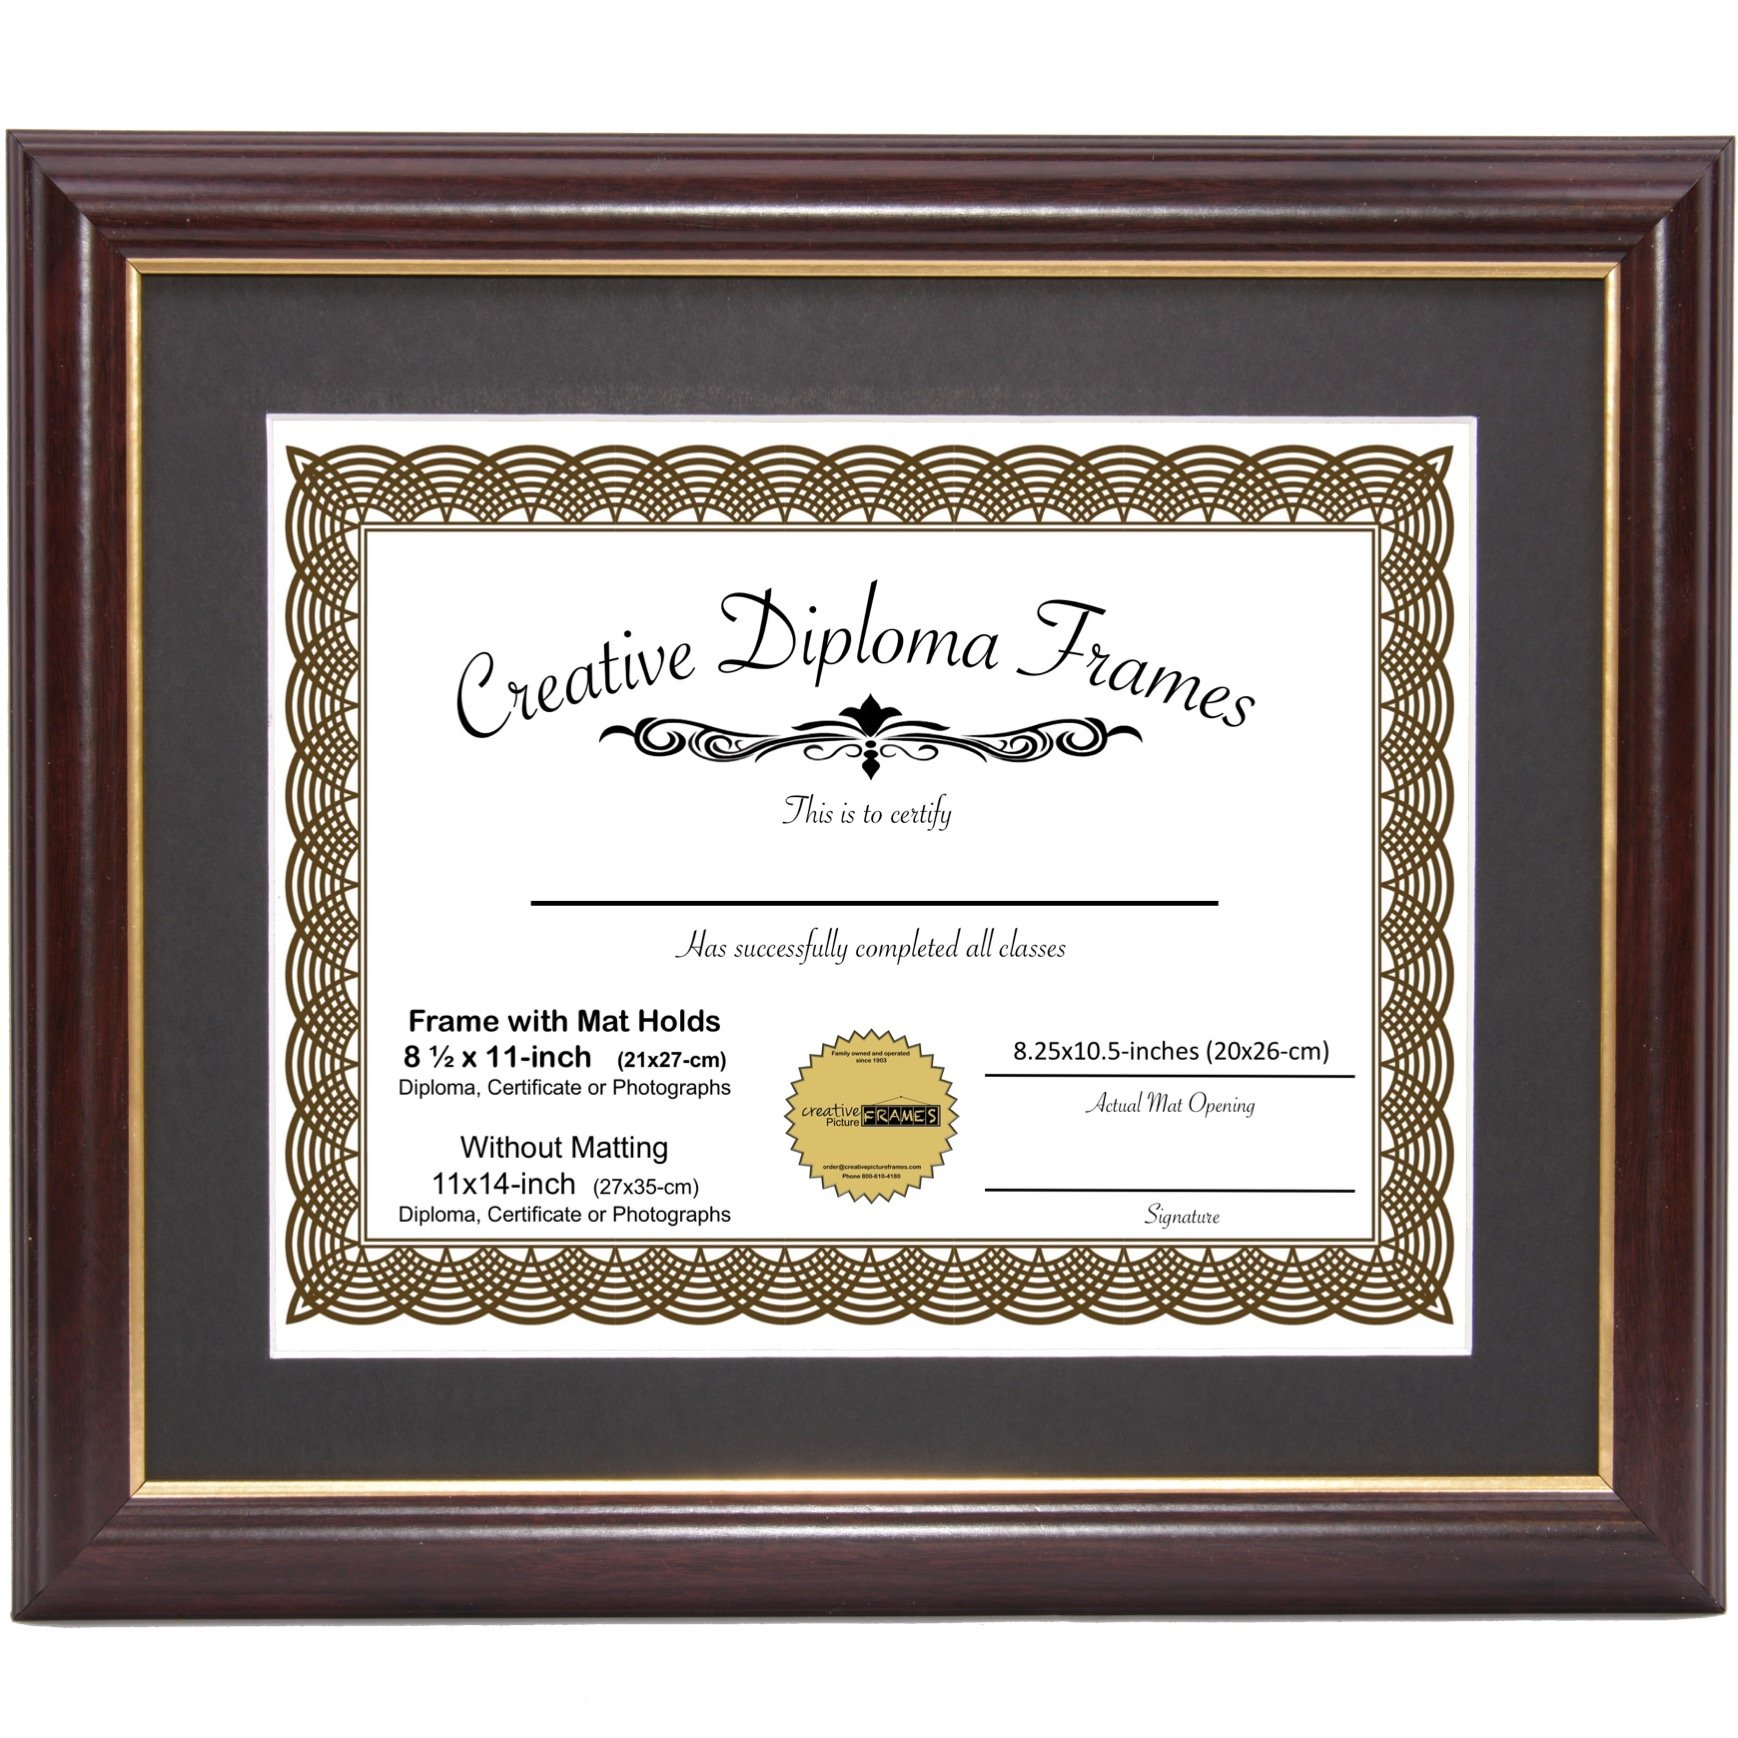 CreativePF [11x14mh.gd] Mahogany Frame with Gold Rim, Black Matting Holds 8.5 by 11-inch Diploma with Easel and Installed Hangers by Creative Picture Frames